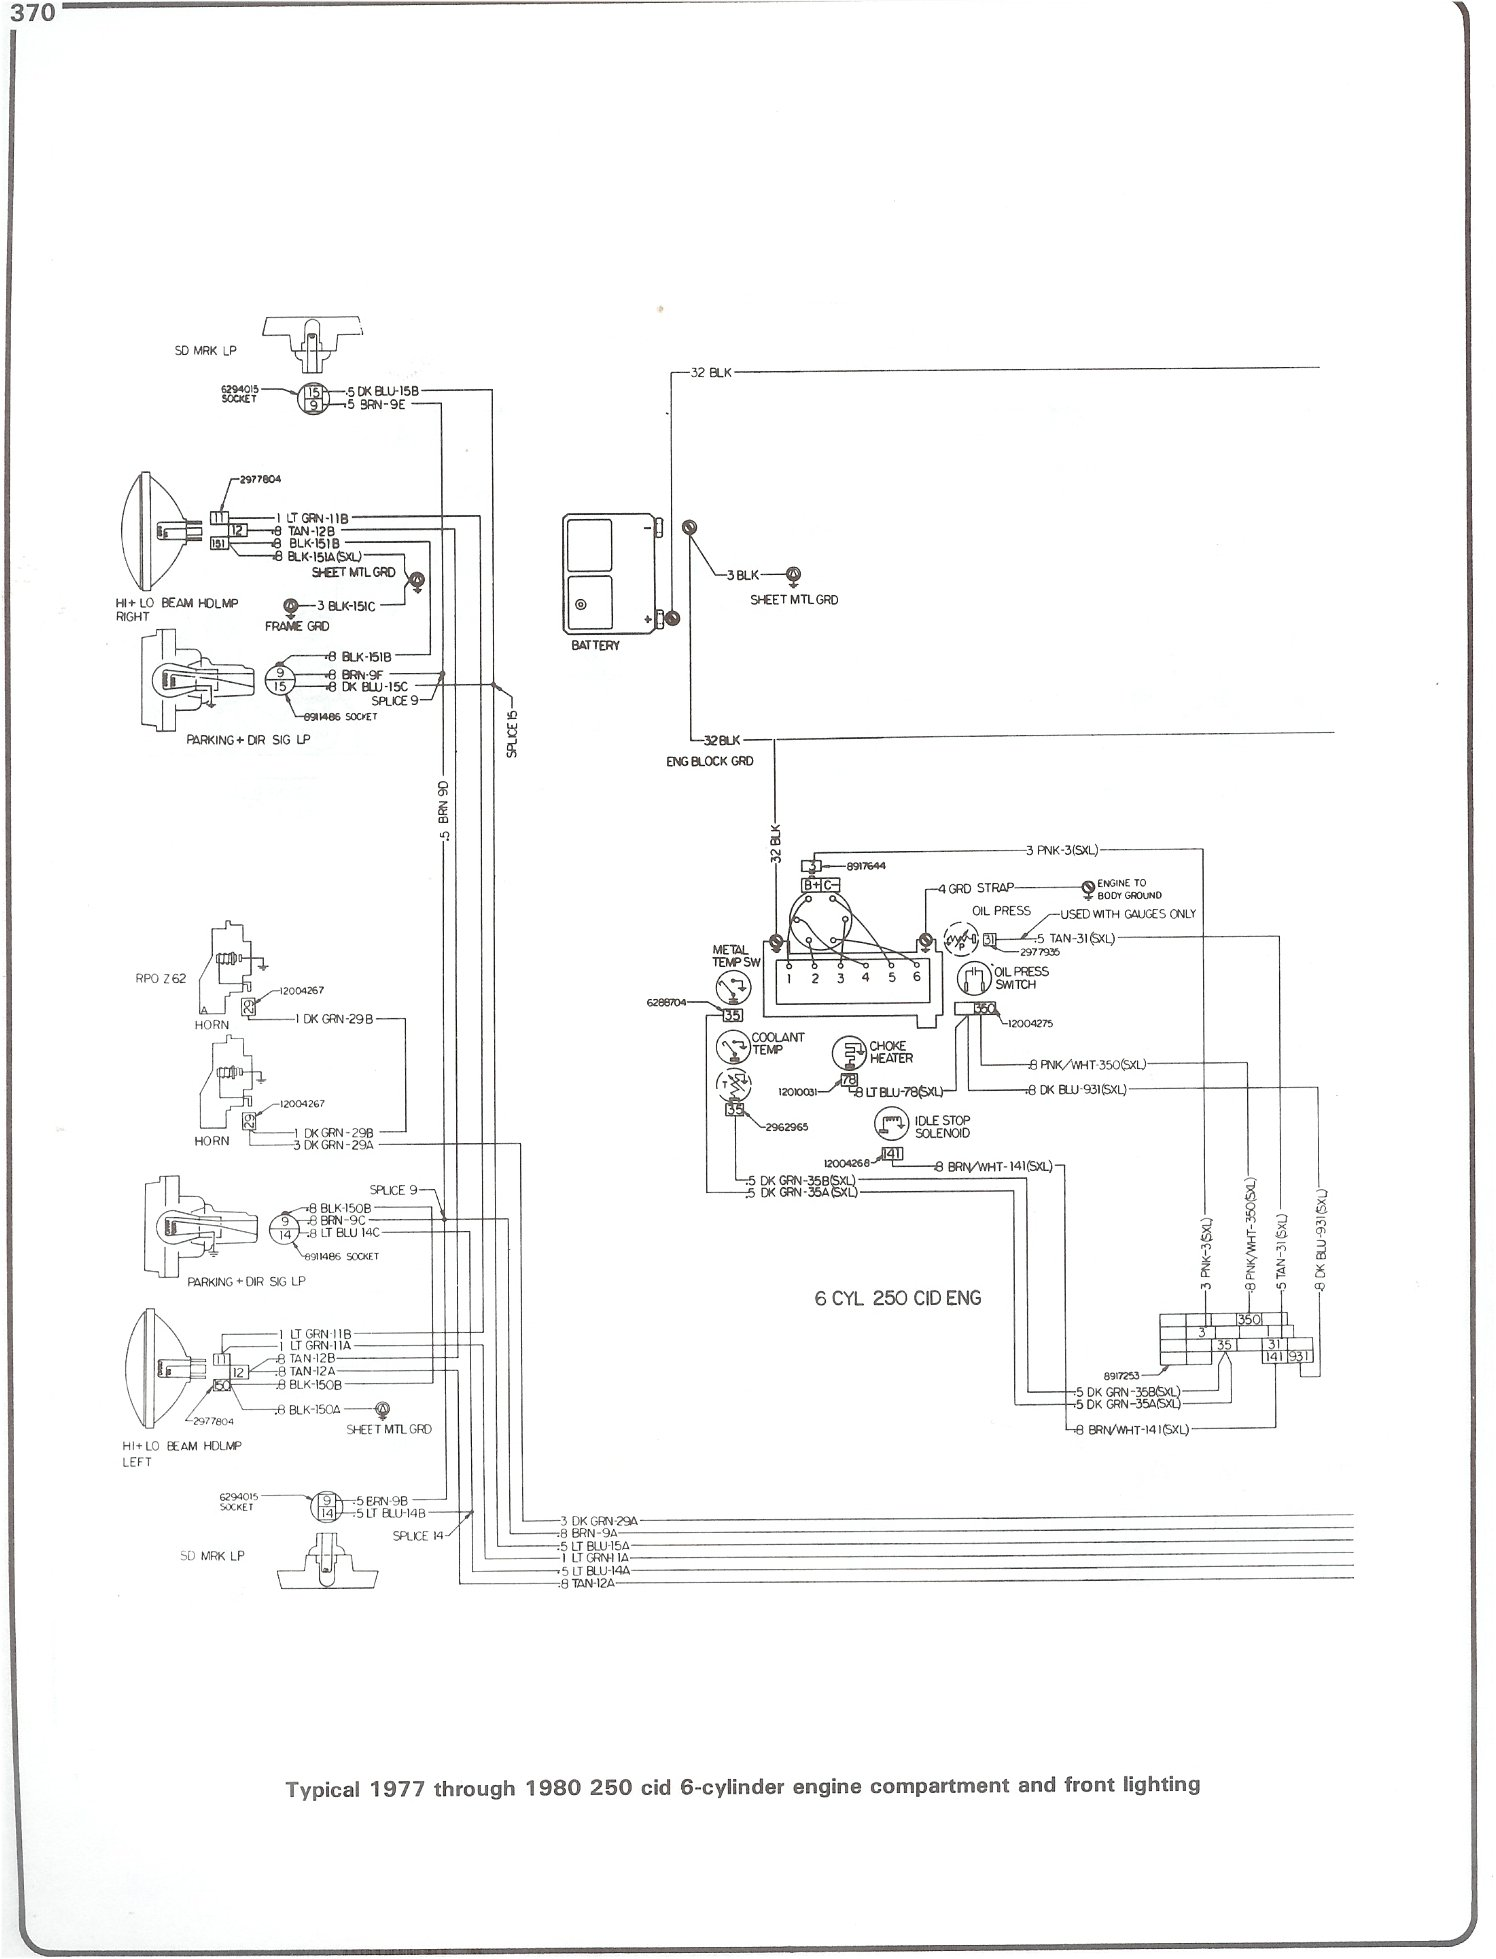 Complete 73-87 Wiring Diagrams on l6 wiring diagram, r6 wiring diagram, k40 wiring diagram, d2 wiring diagram, a2 wiring diagram, t1 wiring diagram, l3 wiring diagram, h3 wiring diagram, c5 wiring diagram, k30 wiring diagram, e1 wiring diagram, t5 wiring diagram, k7 wiring diagram, l7 wiring diagram, k100 wiring diagram, j1 wiring diagram, h4 wiring diagram, g6 wiring diagram, a4 wiring diagram, h1 wiring diagram,